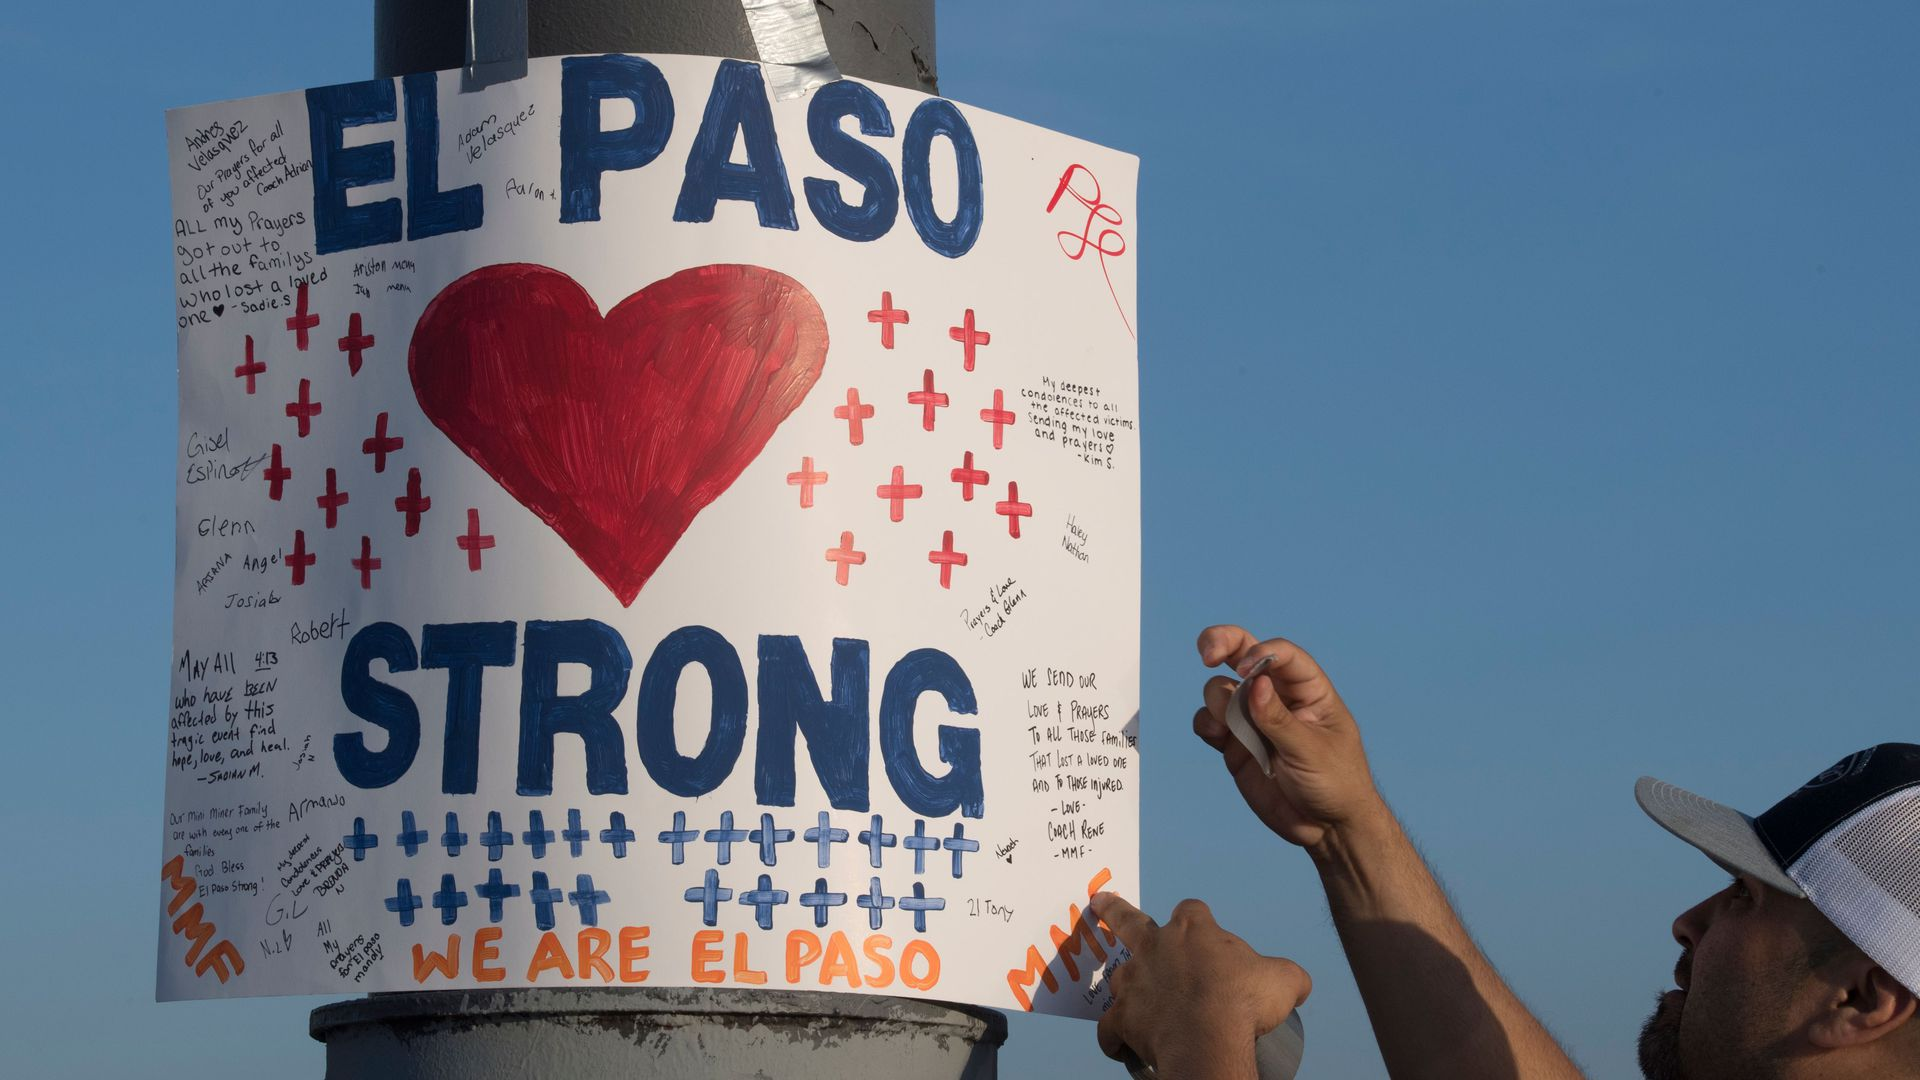 A sign that says El Paso strong